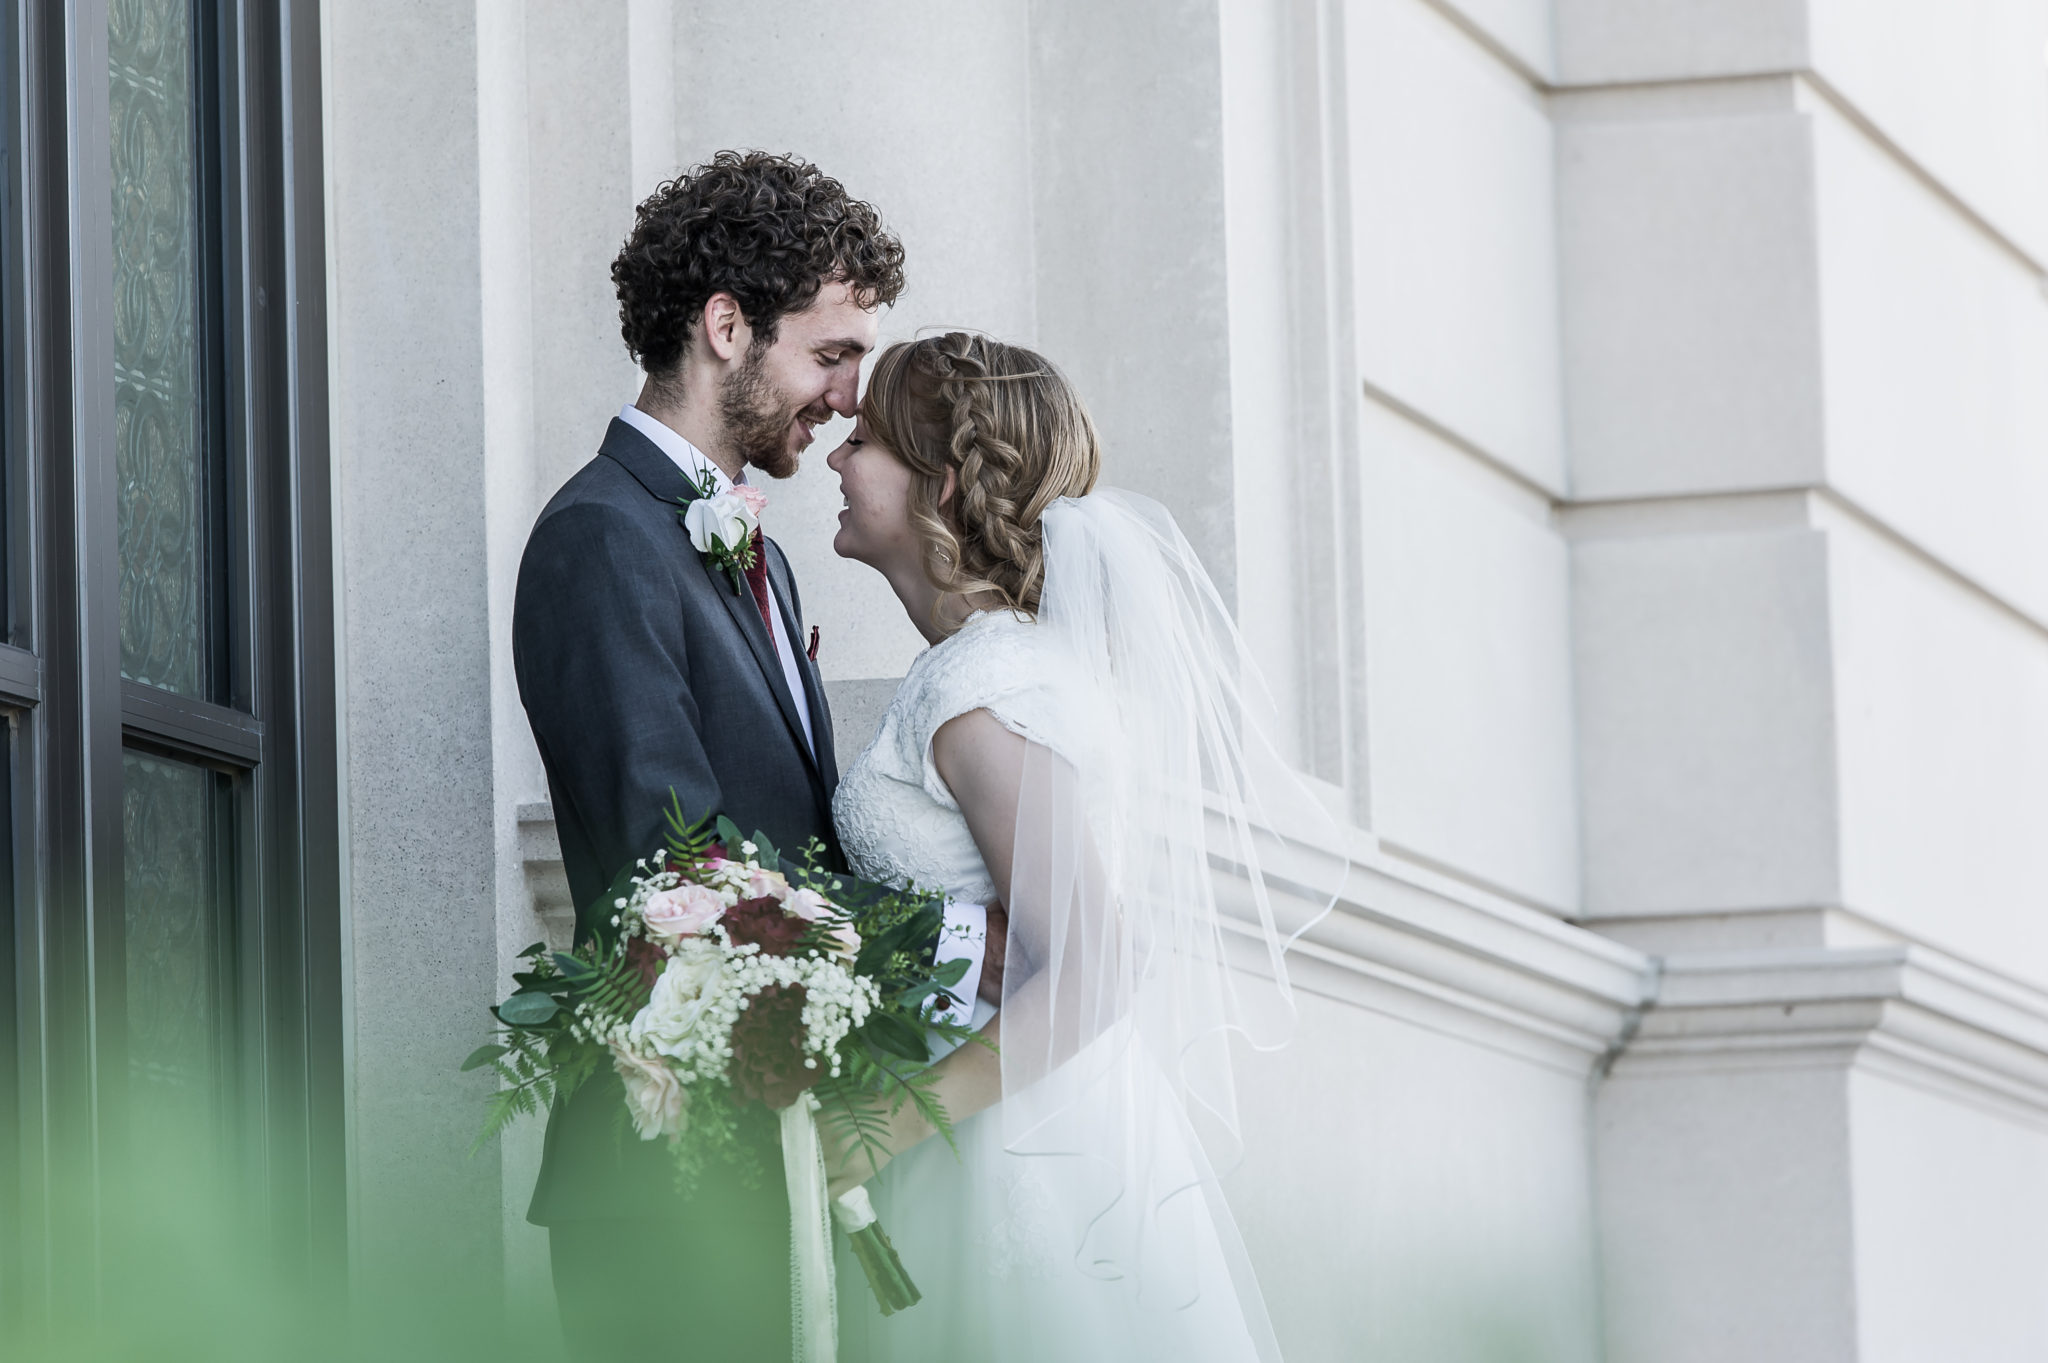 Denver Colorado destination wedding photo album highlight Ryan Hender photography